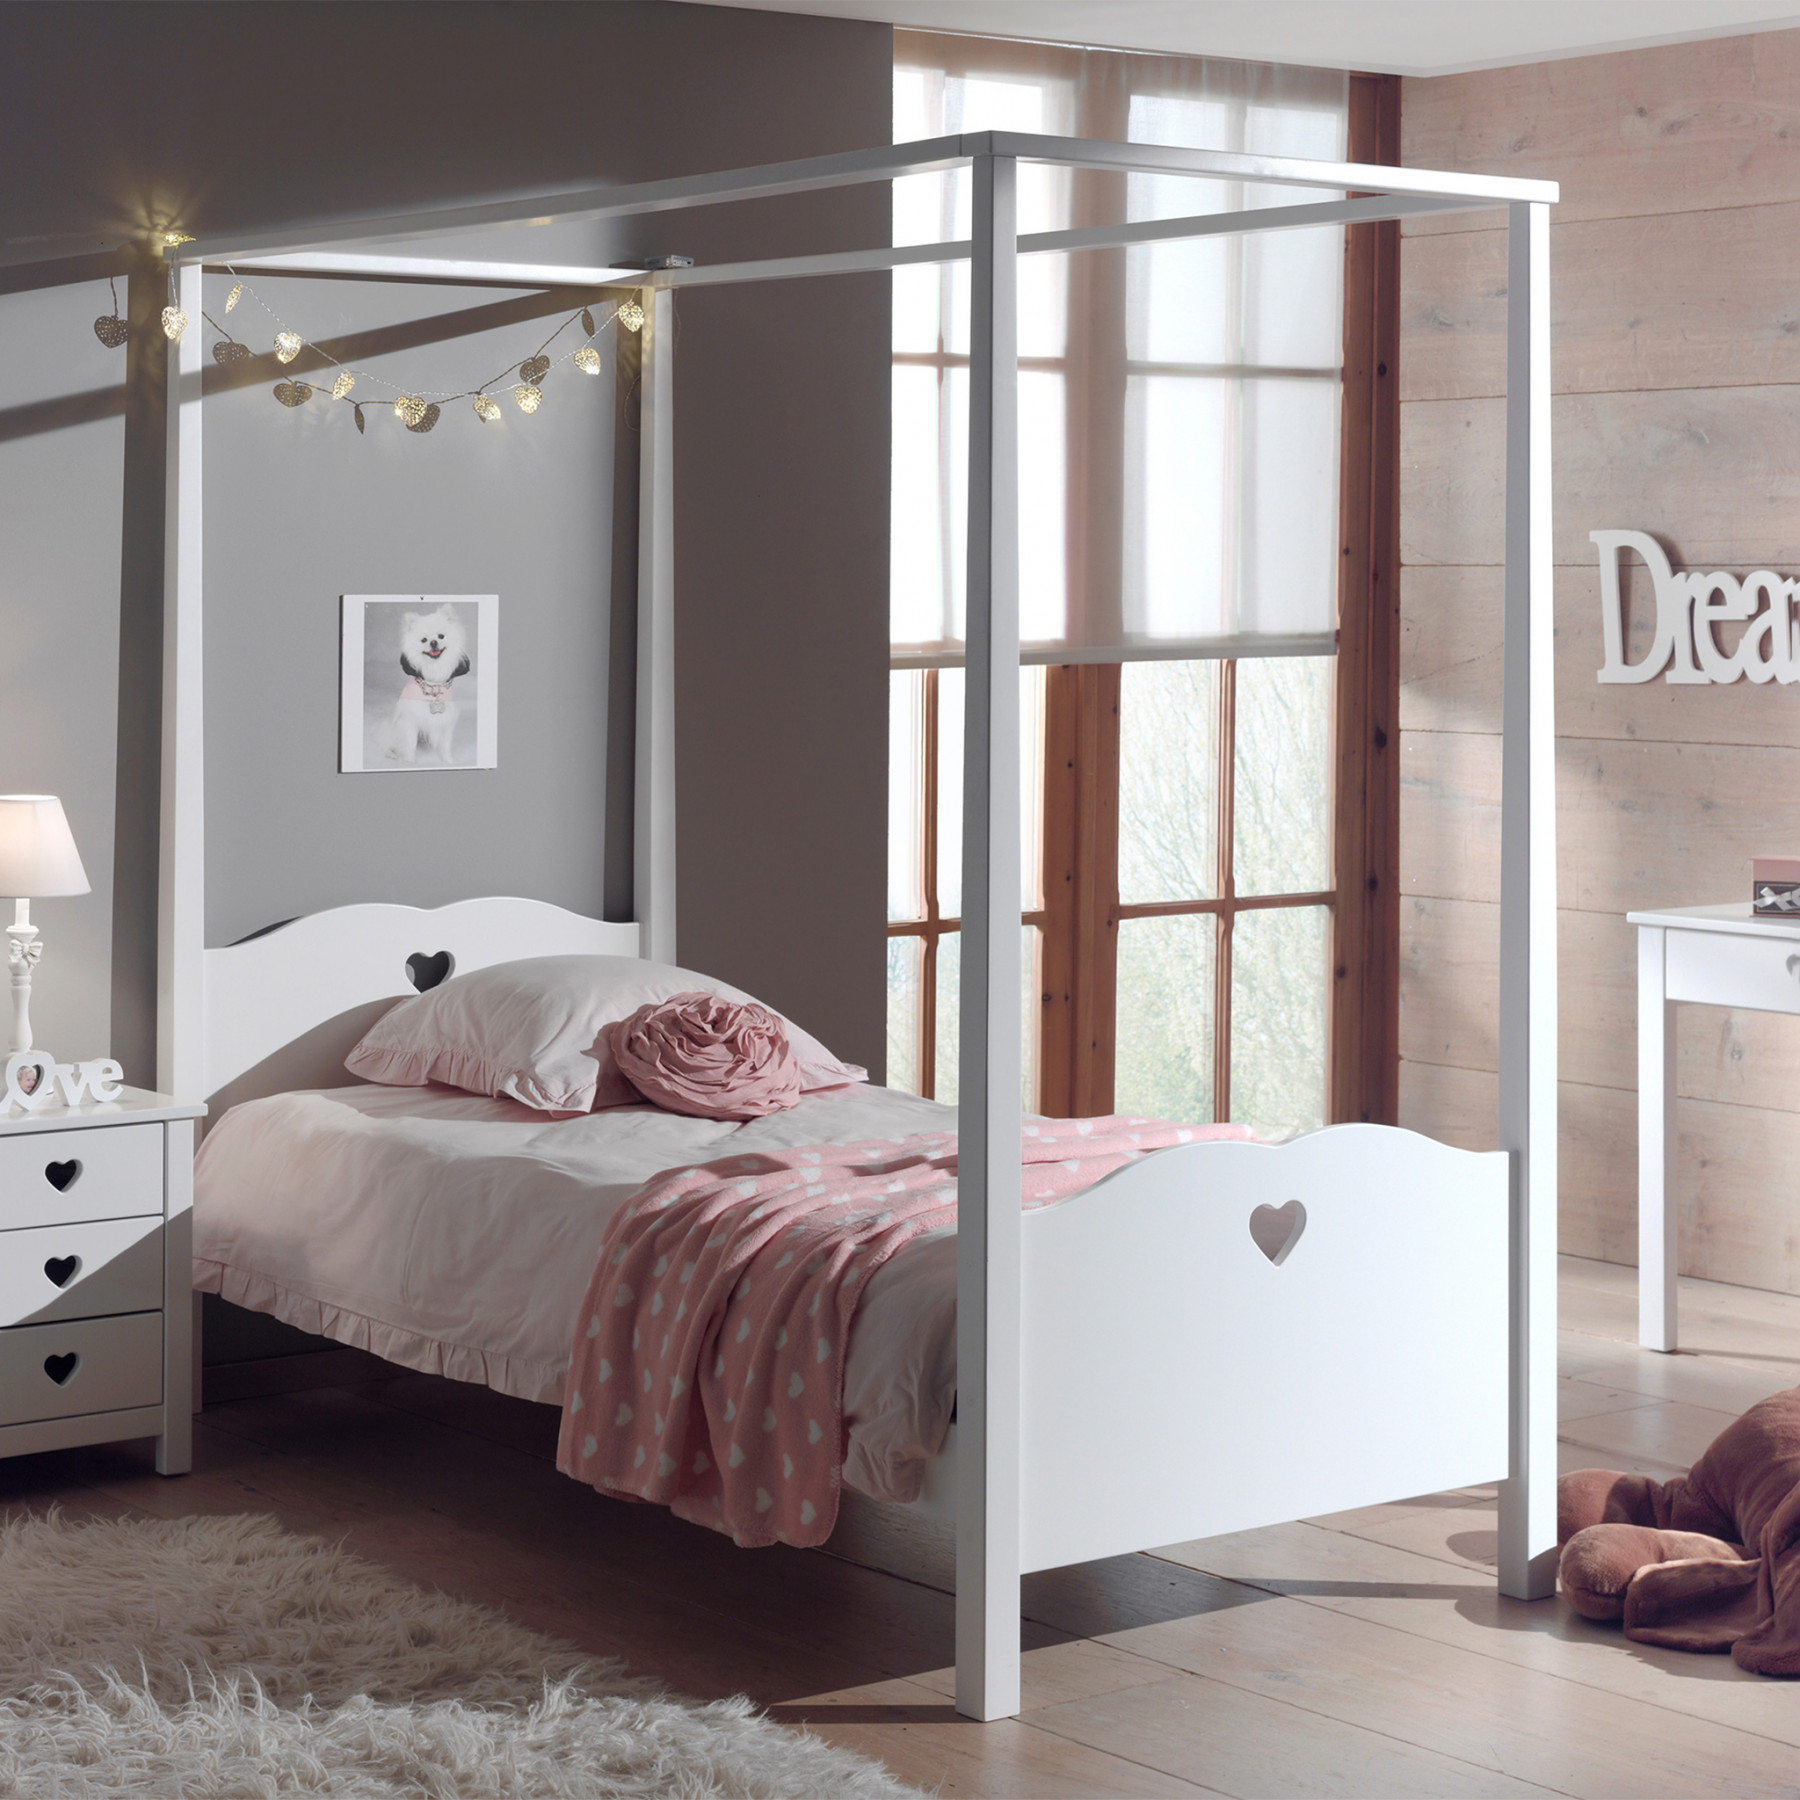 lit enfant baldaquin avec voialges en bois blanc 90x200 es2001. Black Bedroom Furniture Sets. Home Design Ideas